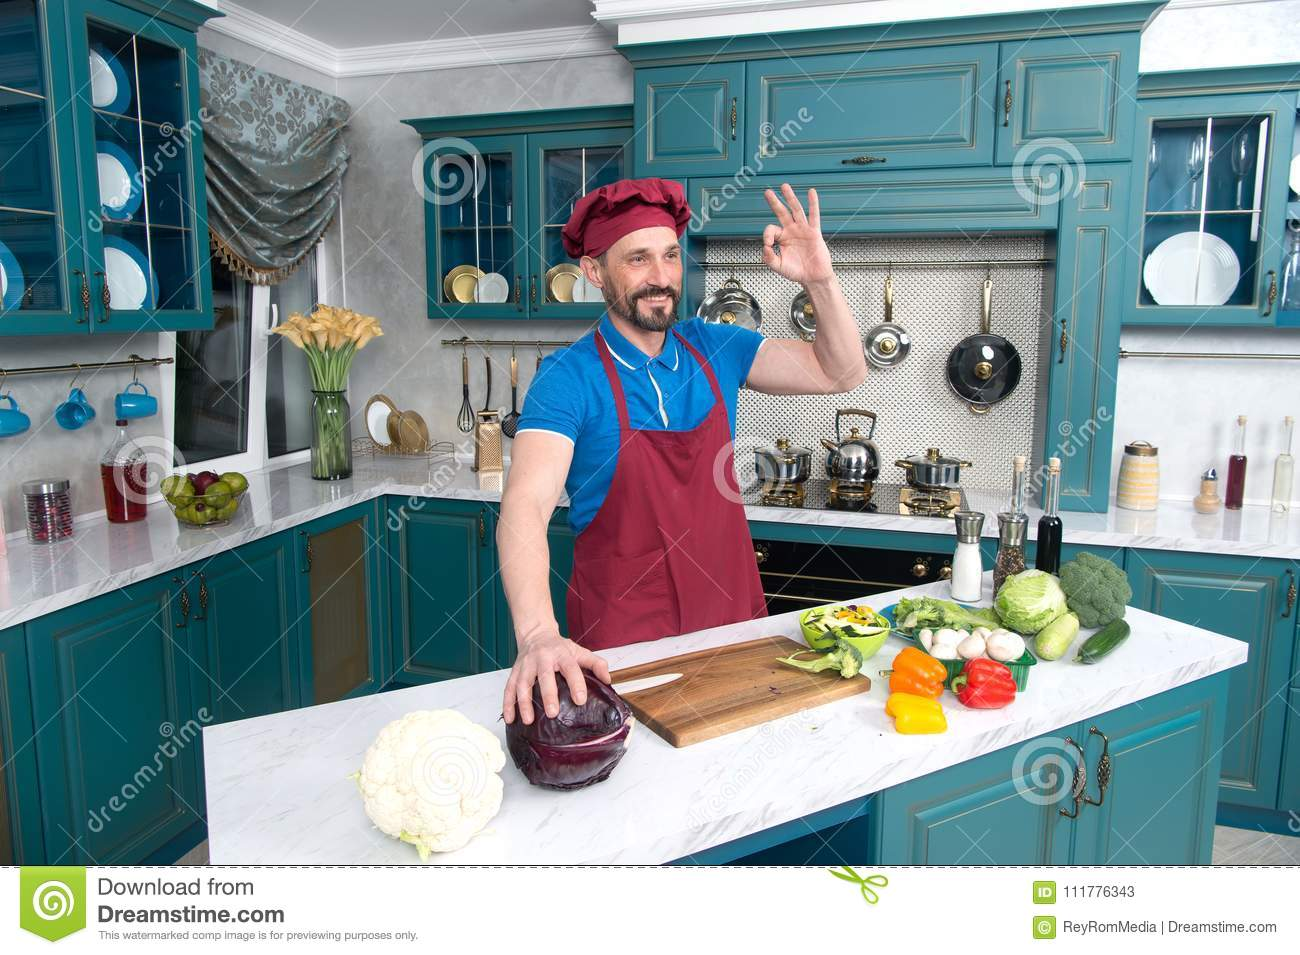 Guy gives OKey and hold red cabbage. Chef ok before cooking vegetables at kitchen.